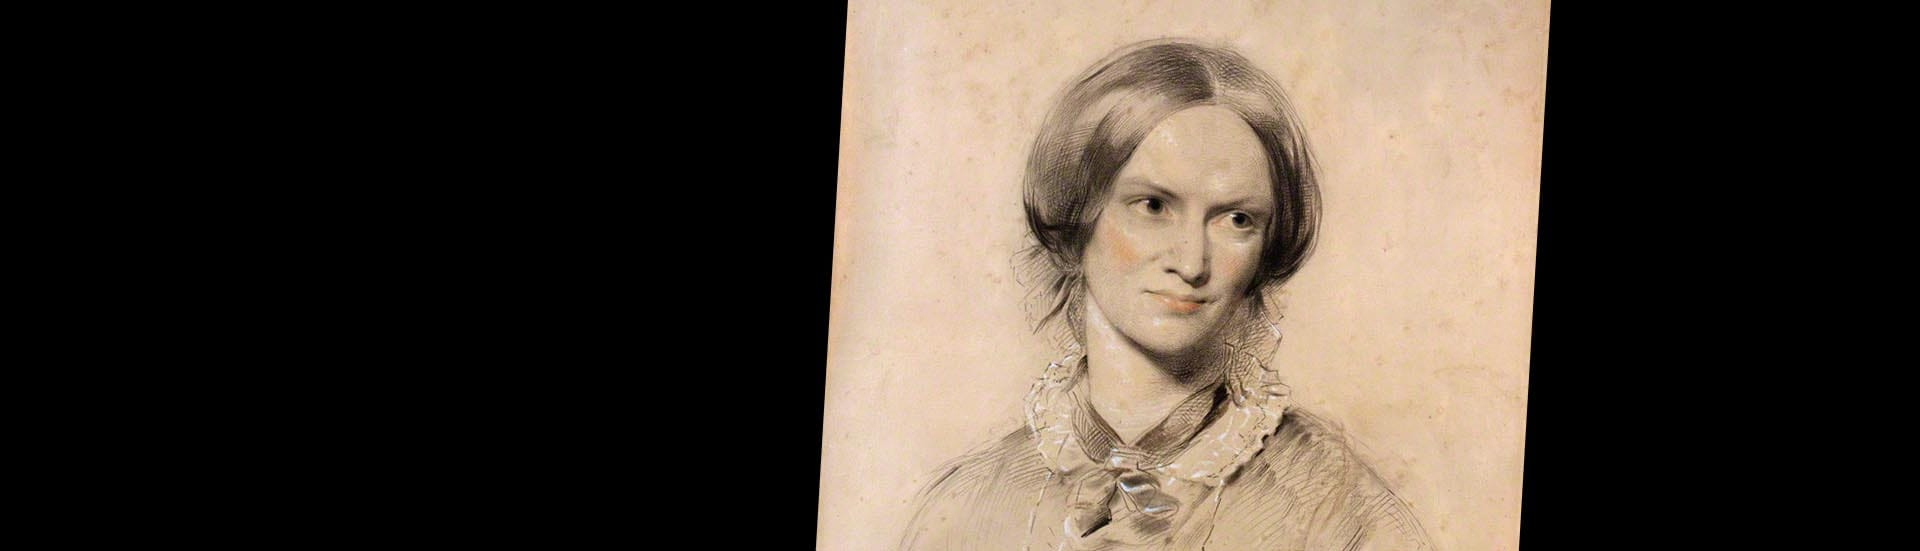 the theme of male dominance in charlotte brontes jane eyre An analysis of male dominance role in jane eyre by charlotte bronte pages 2 more essays like this: jane eyre, charlotte bronte, male dominance role.